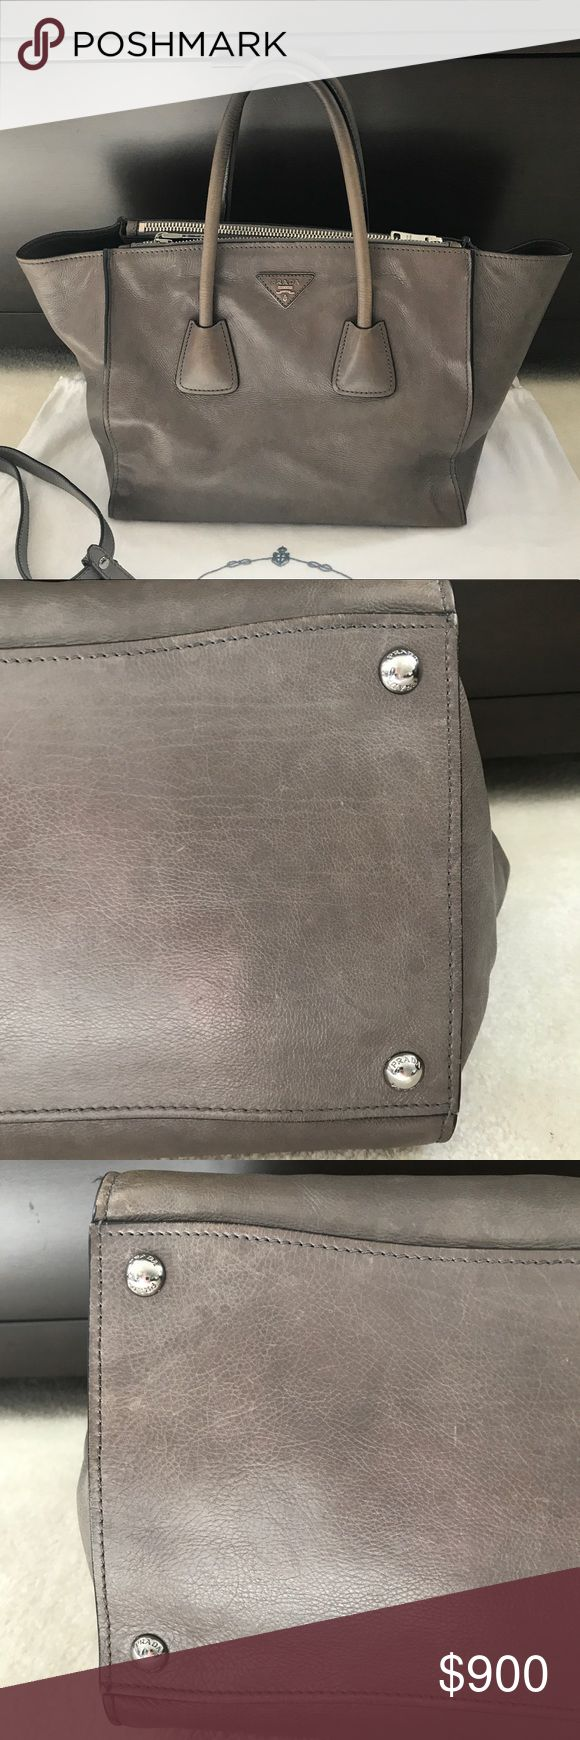 Authentic Prada Double Zipper Handbag ****PRICE DROP****Previously LOVED AUTHENTIC Prada Double Zipper Handbag. Leather shows signs of wear with a few scratches....inside is very clean. Measures approximate 12 x 6 3/4 inches and 10 inches tall.  All offers considered. Prada Bags